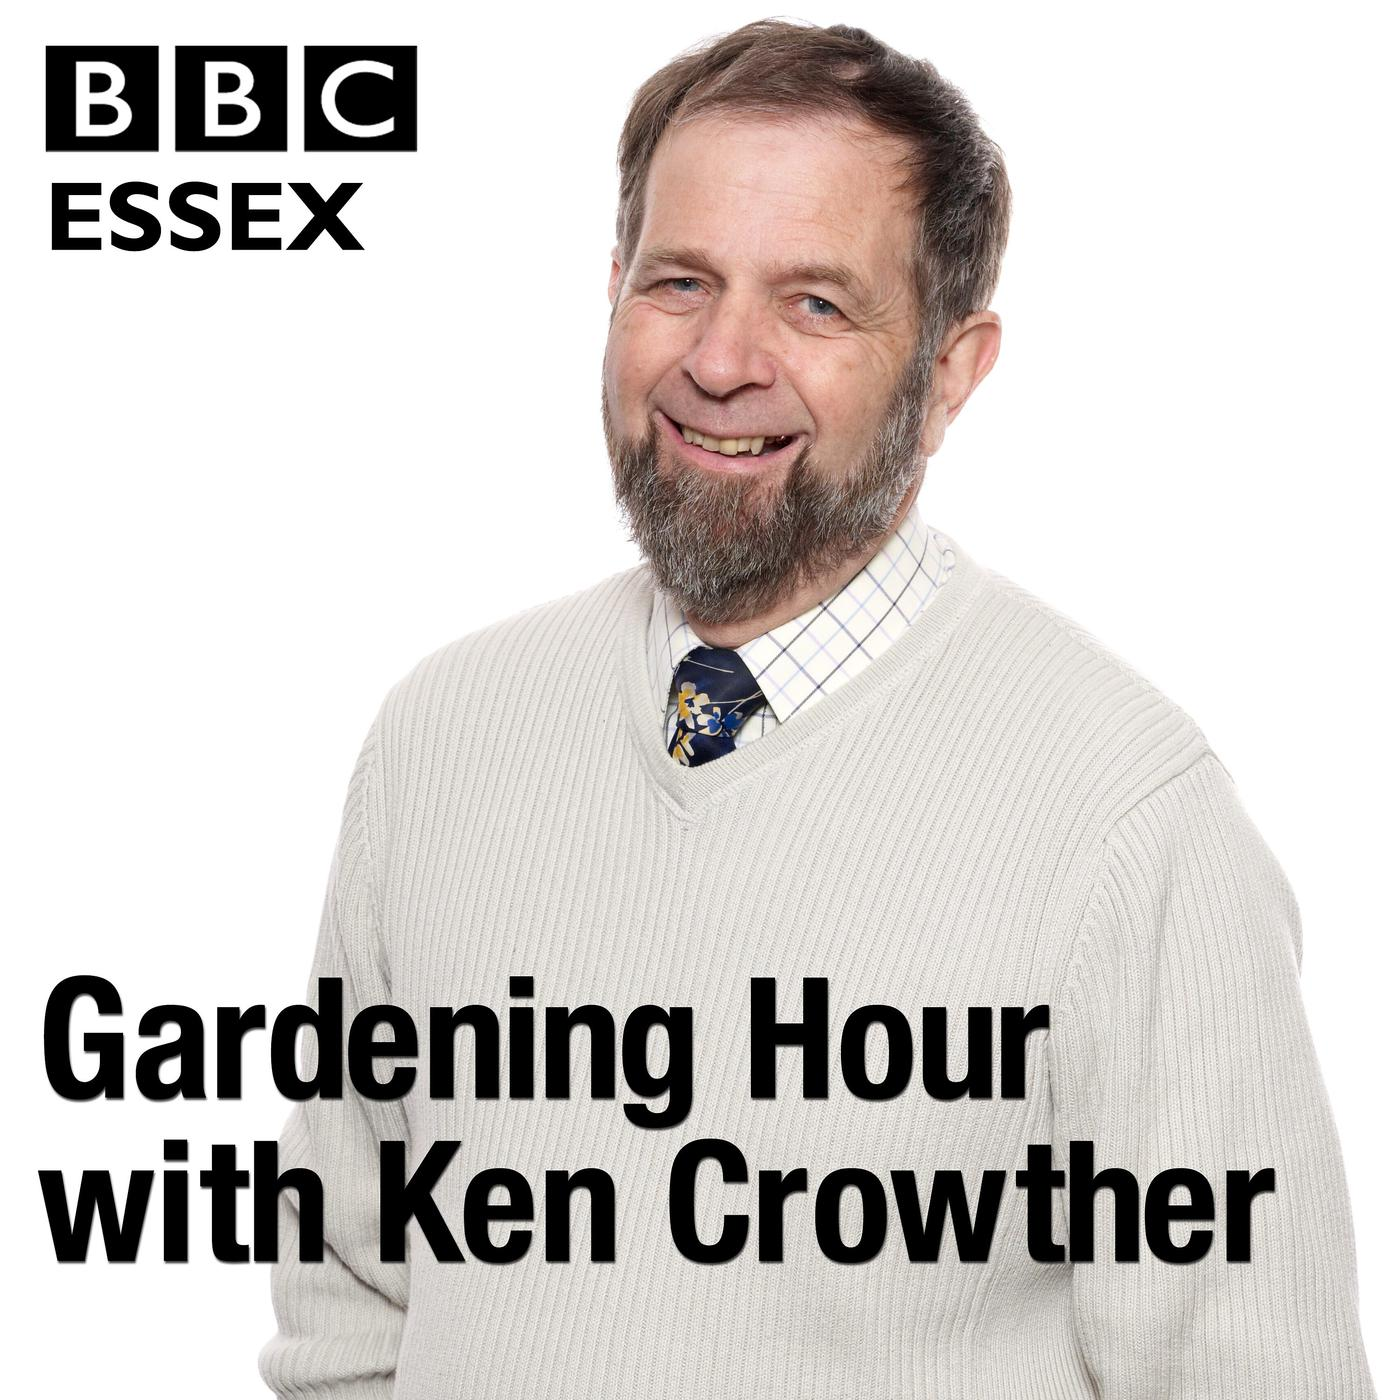 BBC Essex Gardening Hour Podcast